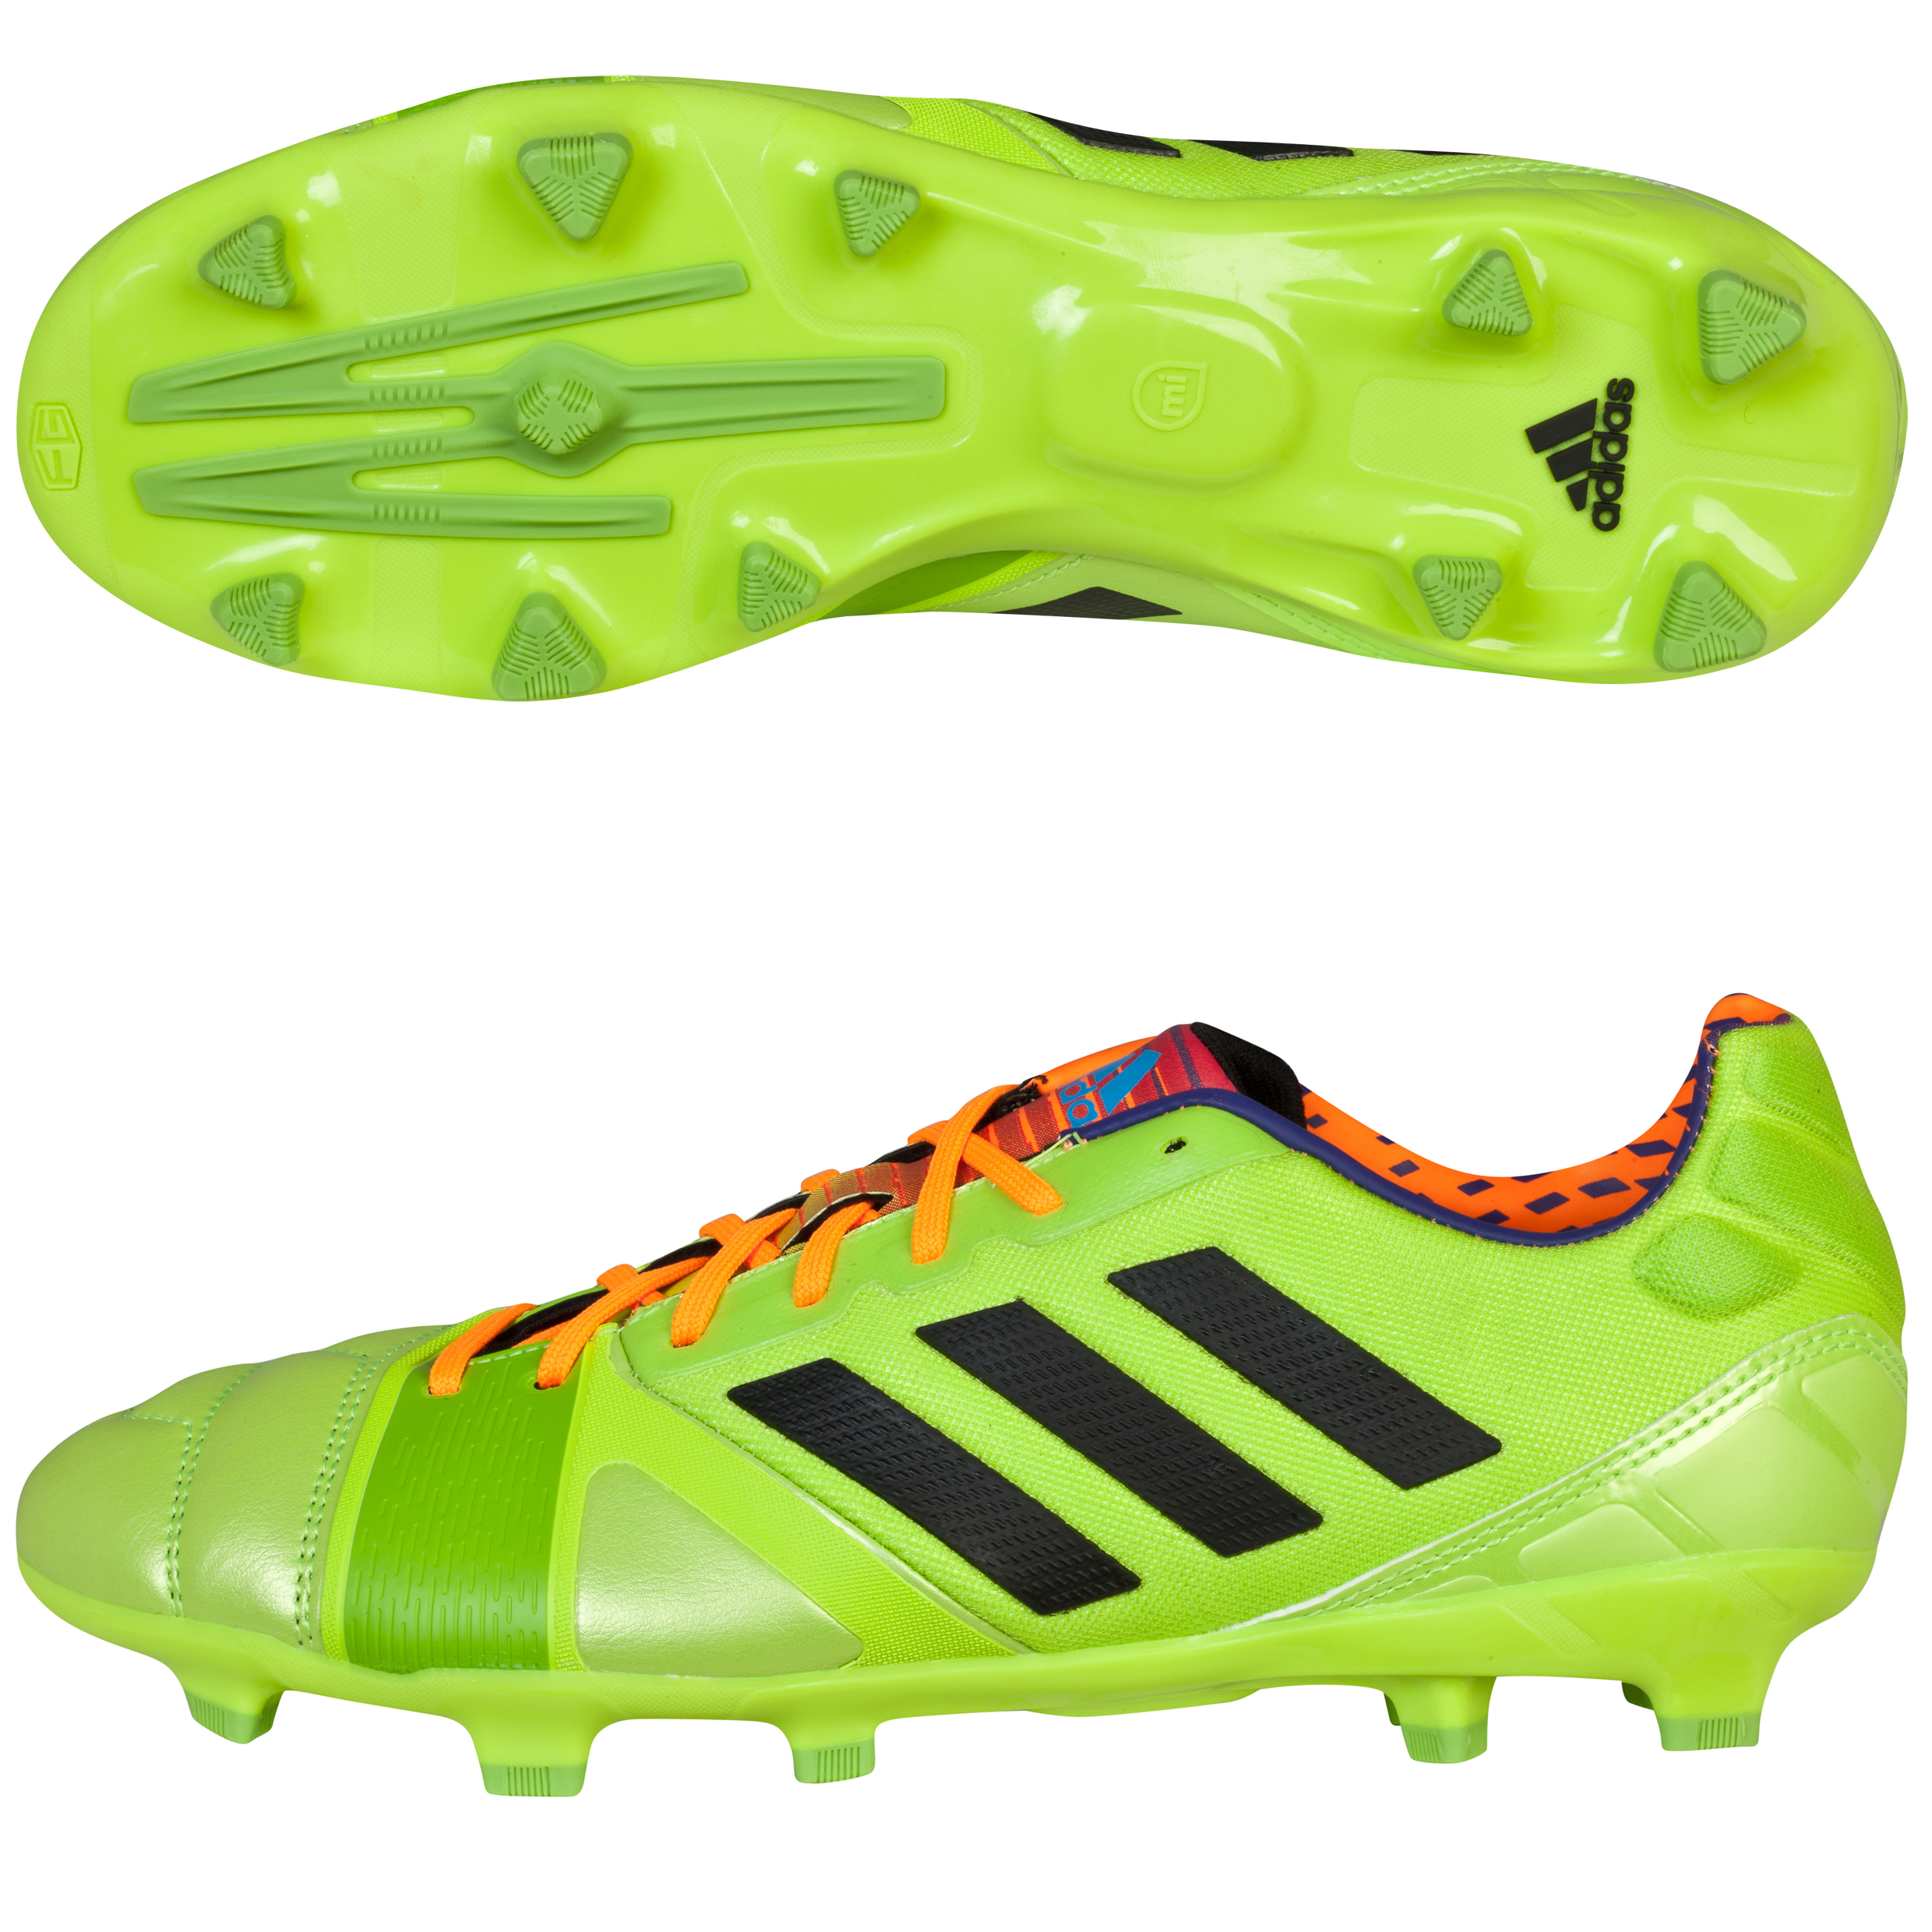 Adidas Nitrocharge 2.0 TRX Firm Ground Football Boots Green